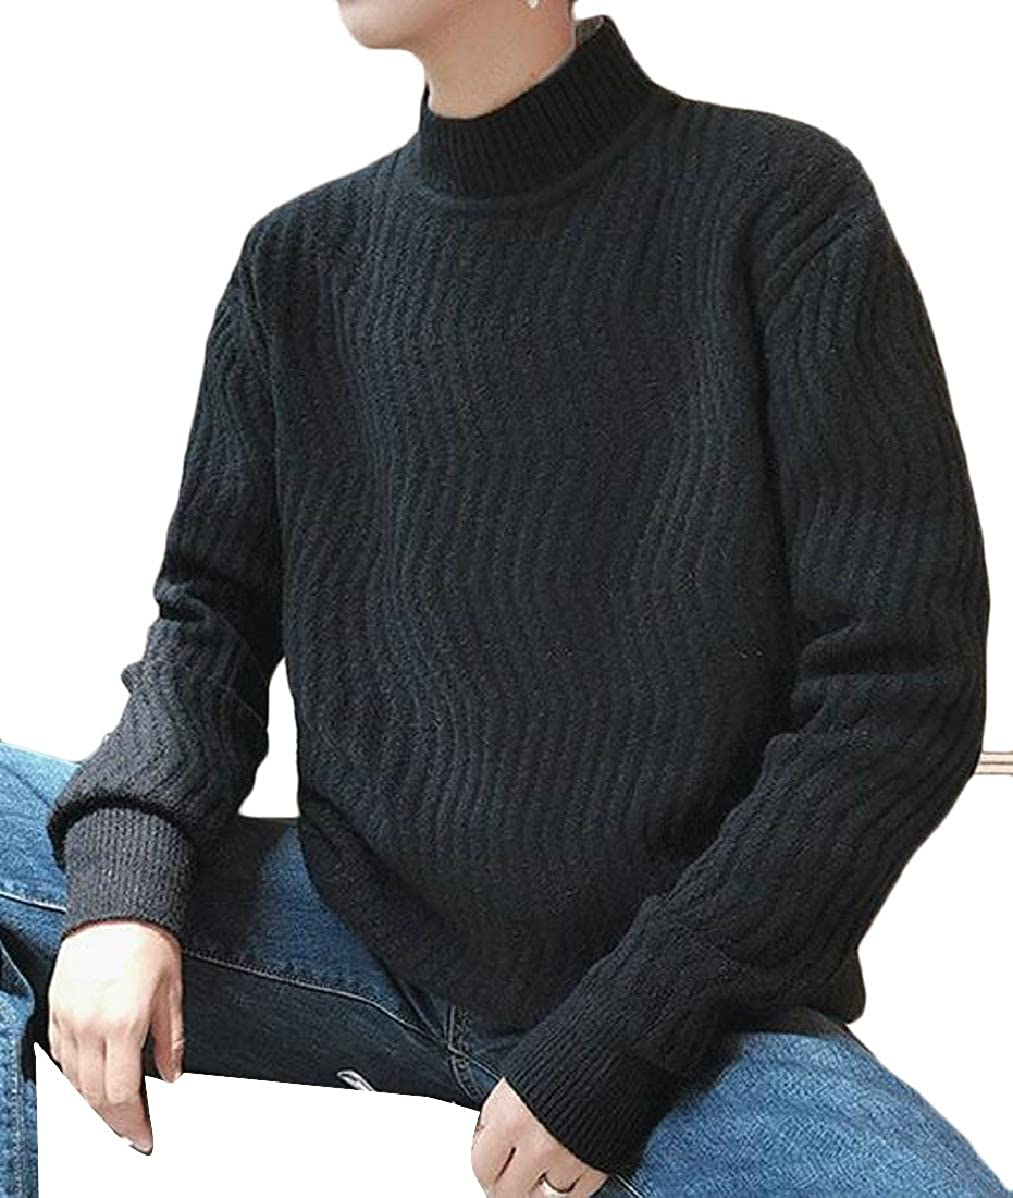 CBTLVSN Mens Casual Loose Knitted Sweater Long Sleeve Mock Neck Pullover Tops